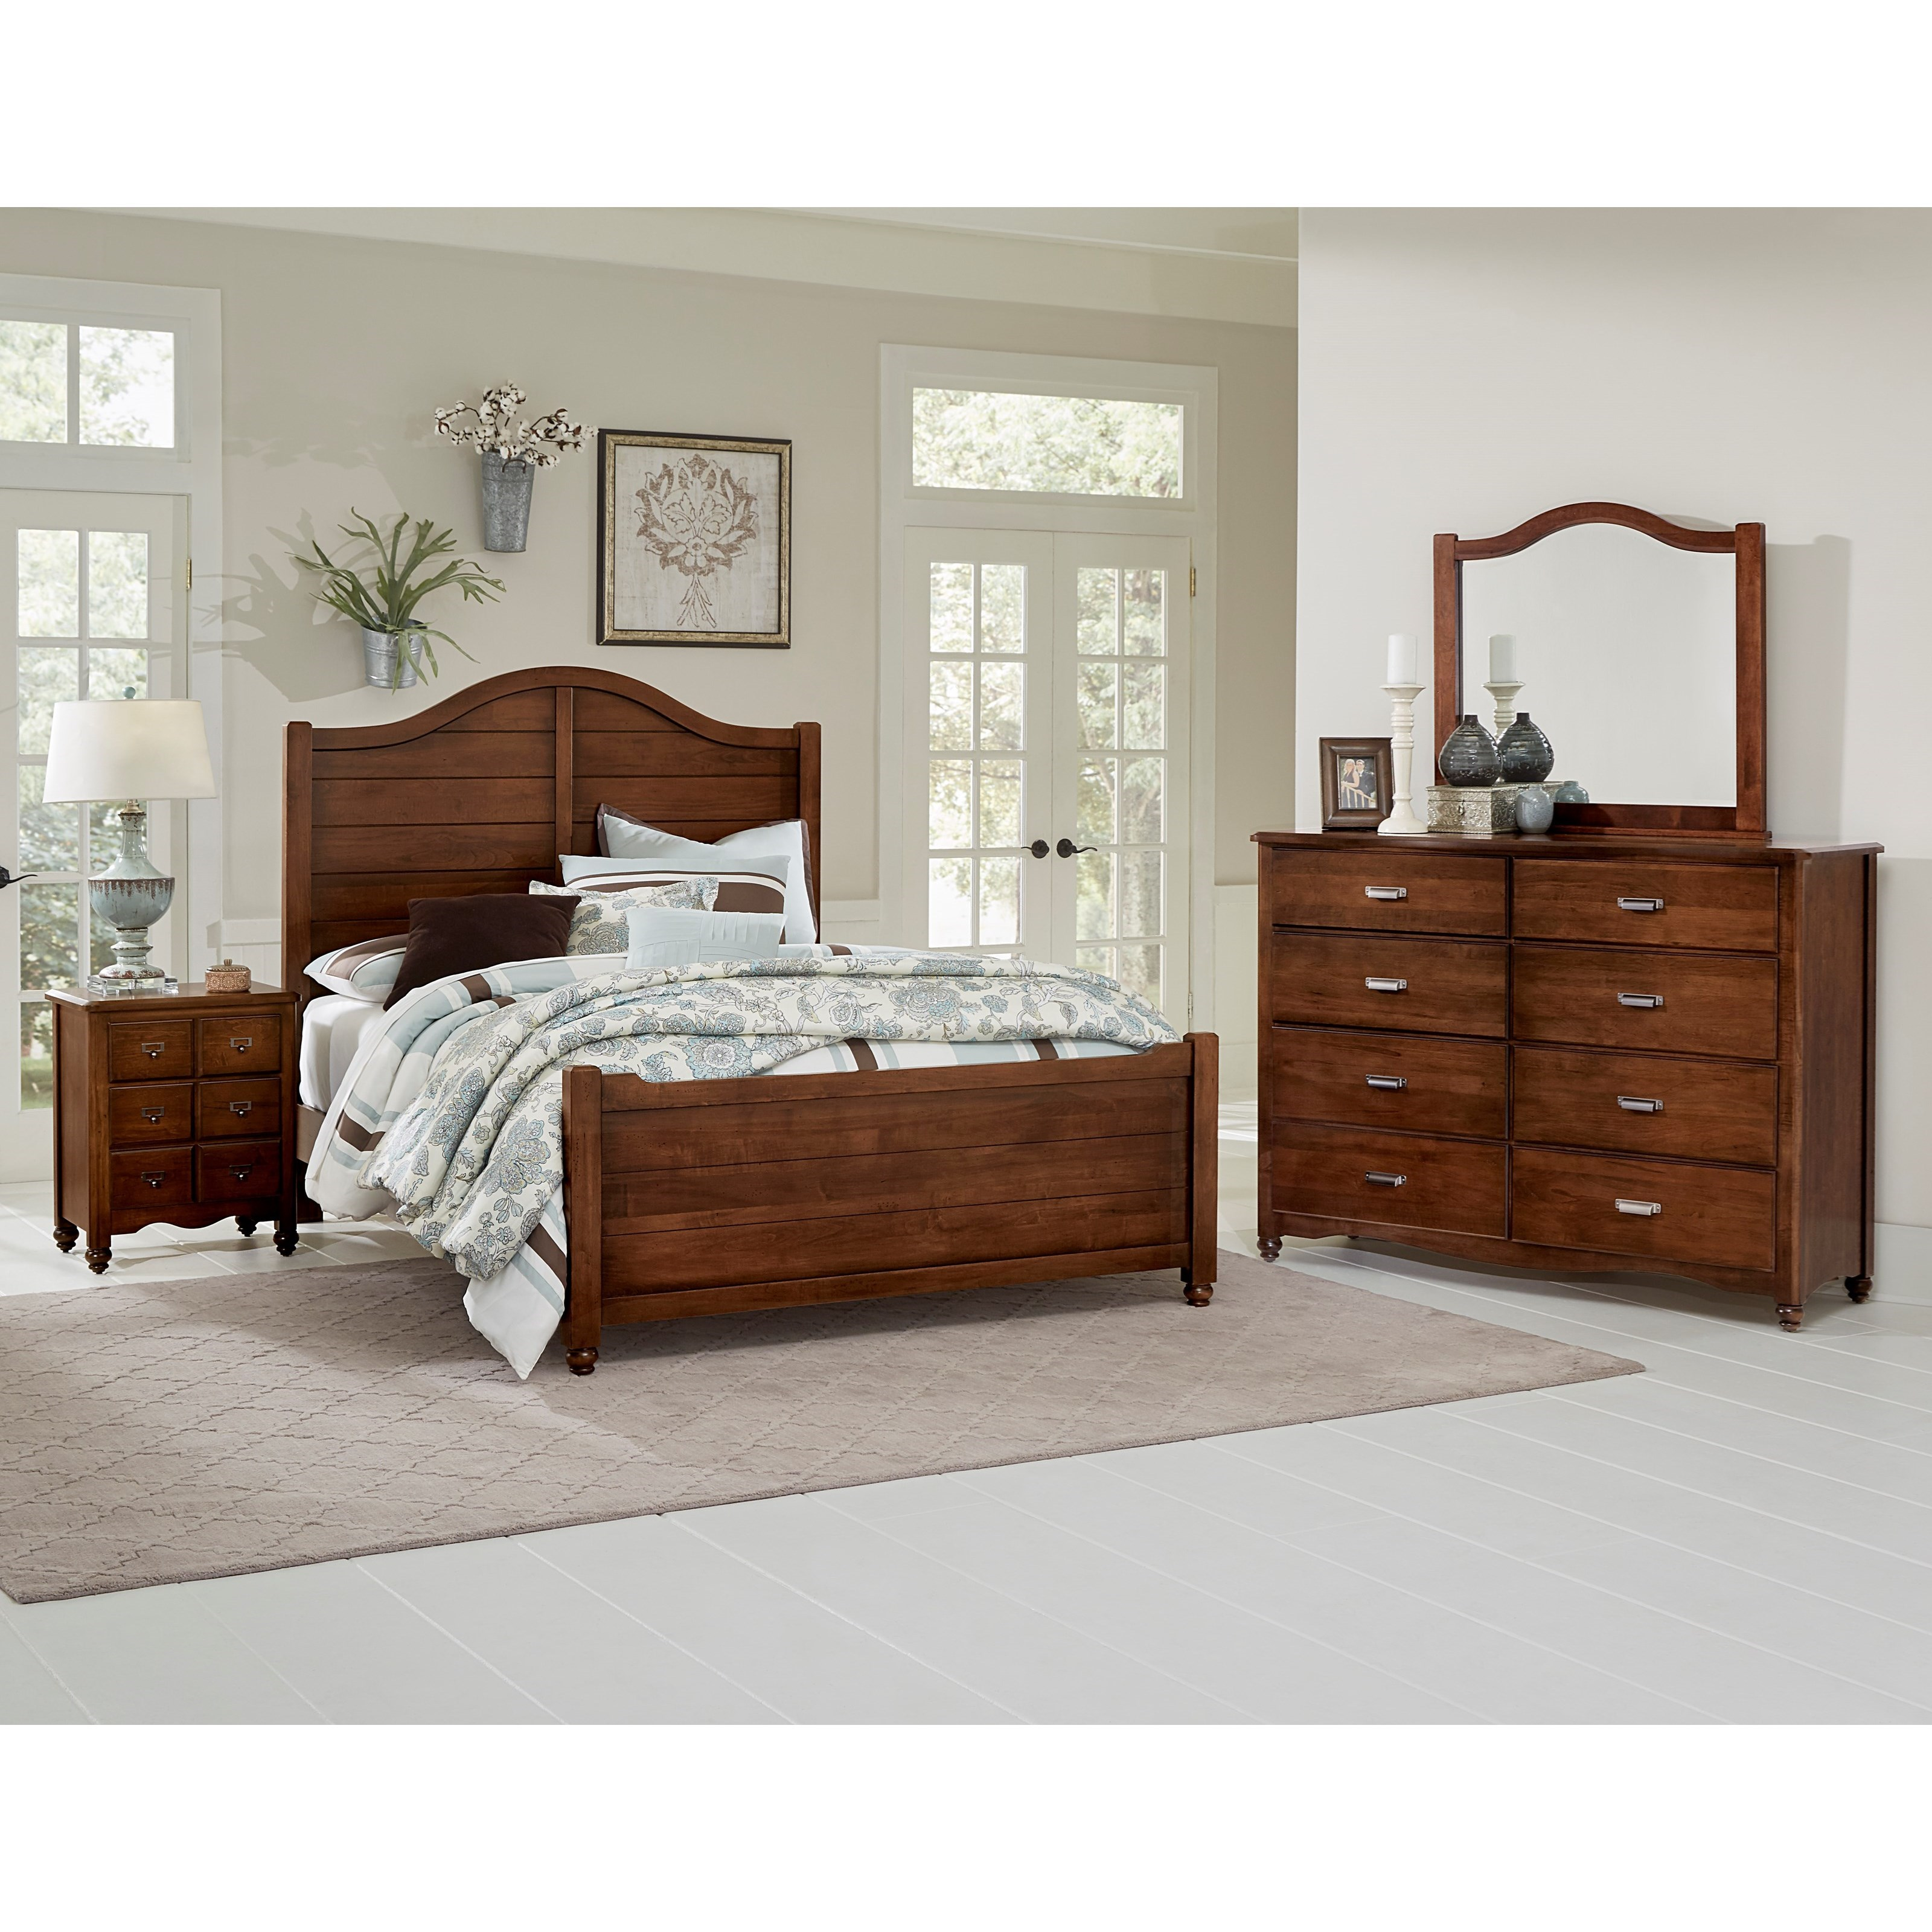 Vaughan bassett american maple solid wood twin shiplap bed for American federal bedroom furniture